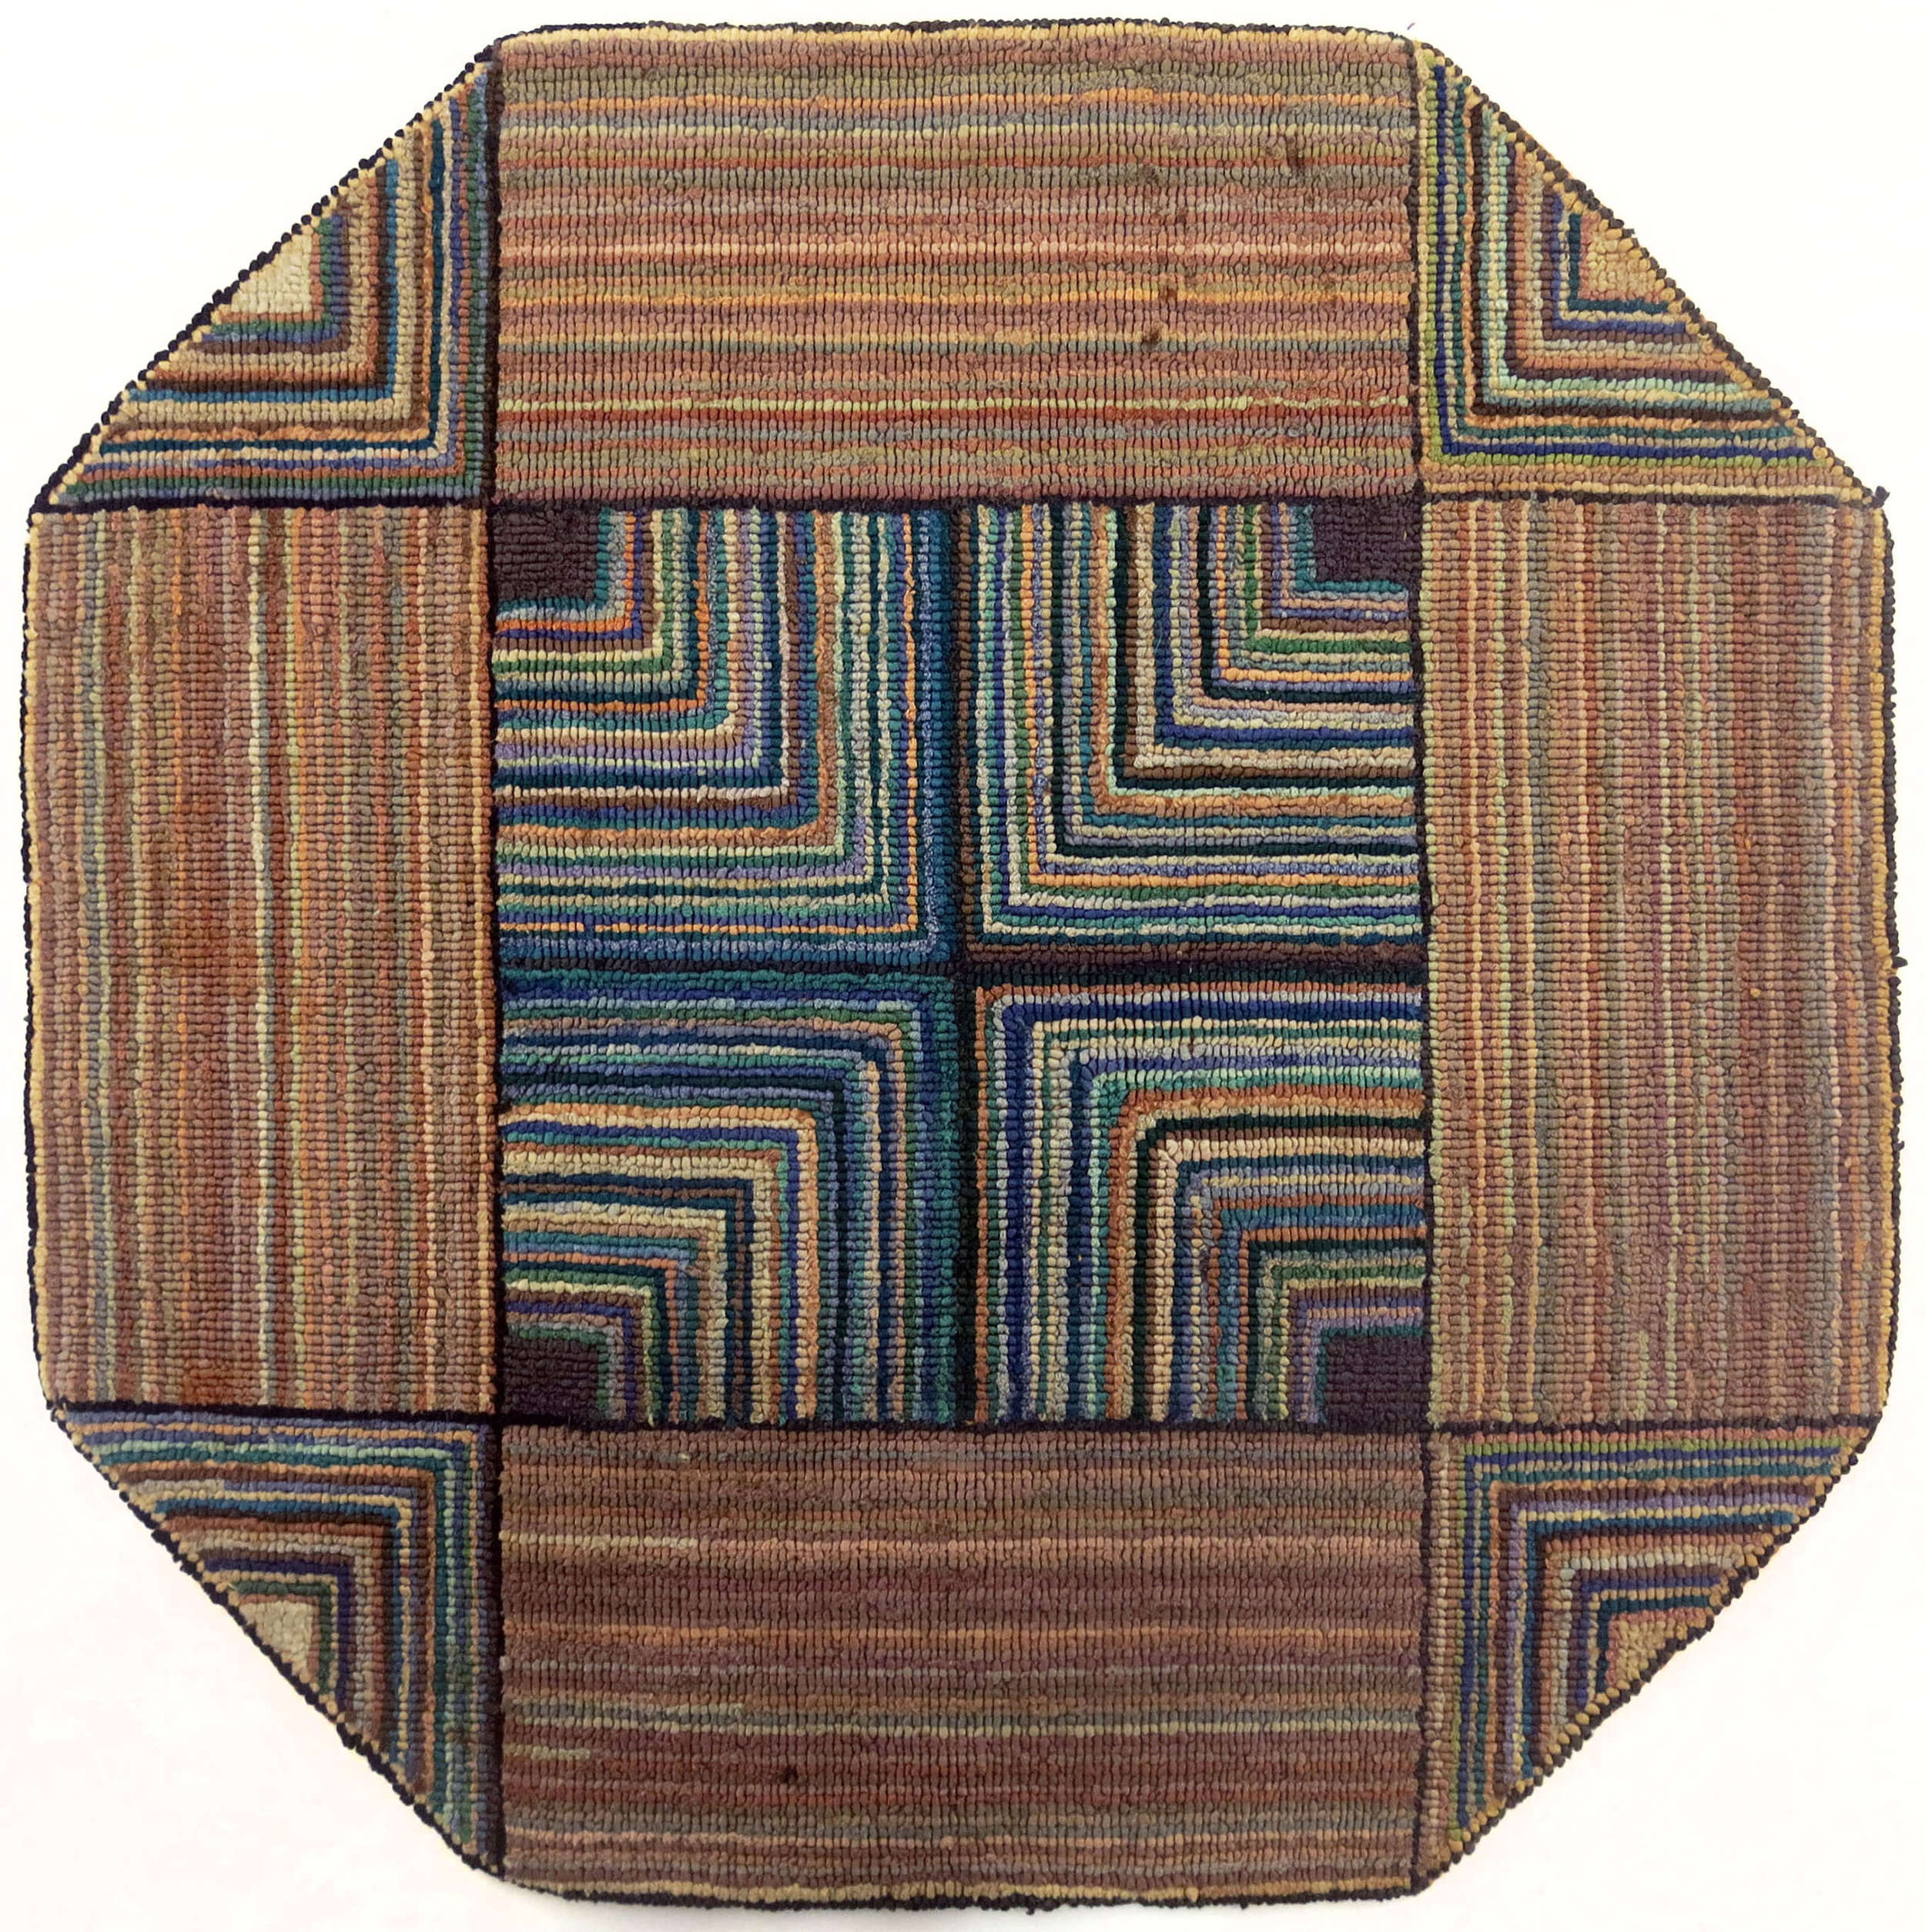 Anonymous, The Grenfell Mission, Geometric Octagon Mat, c. 1939, silk and rayon; dyed, 16h x 16w in.